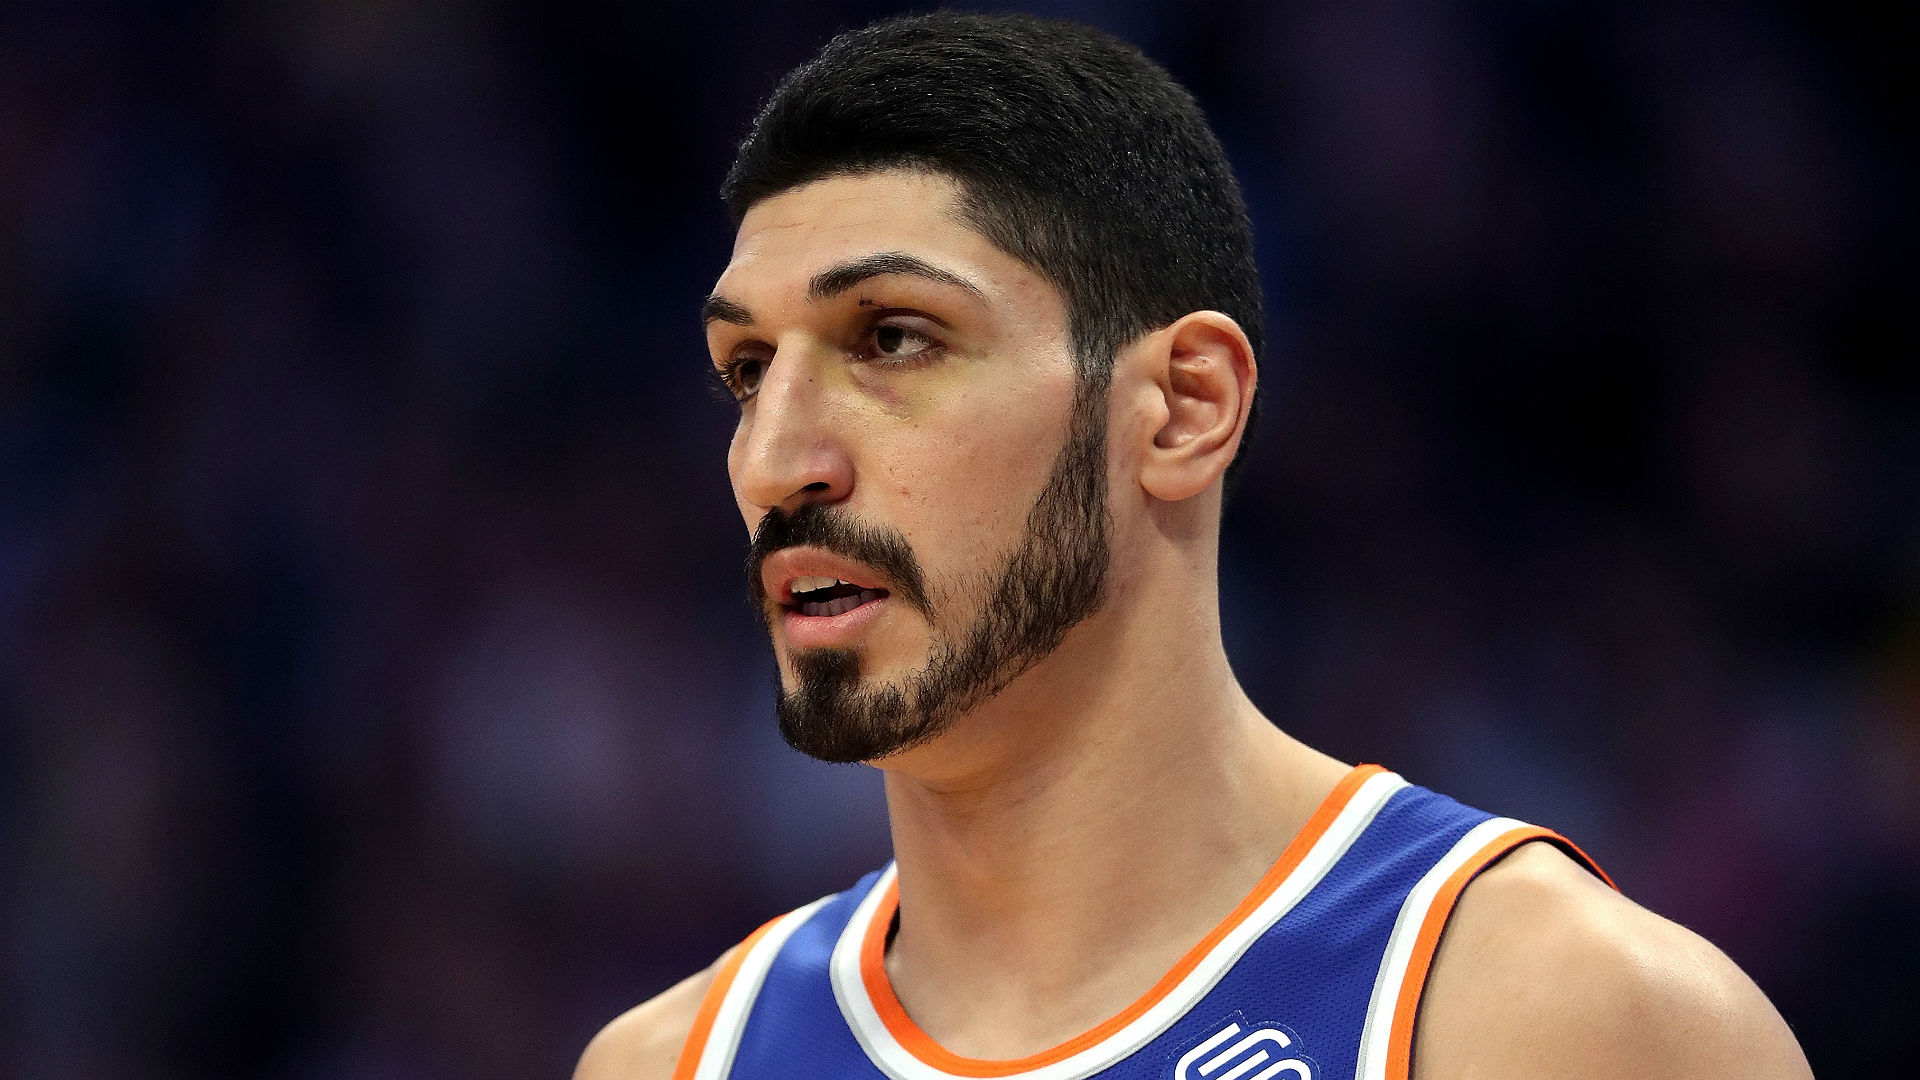 Kanter joins Trail Blazers